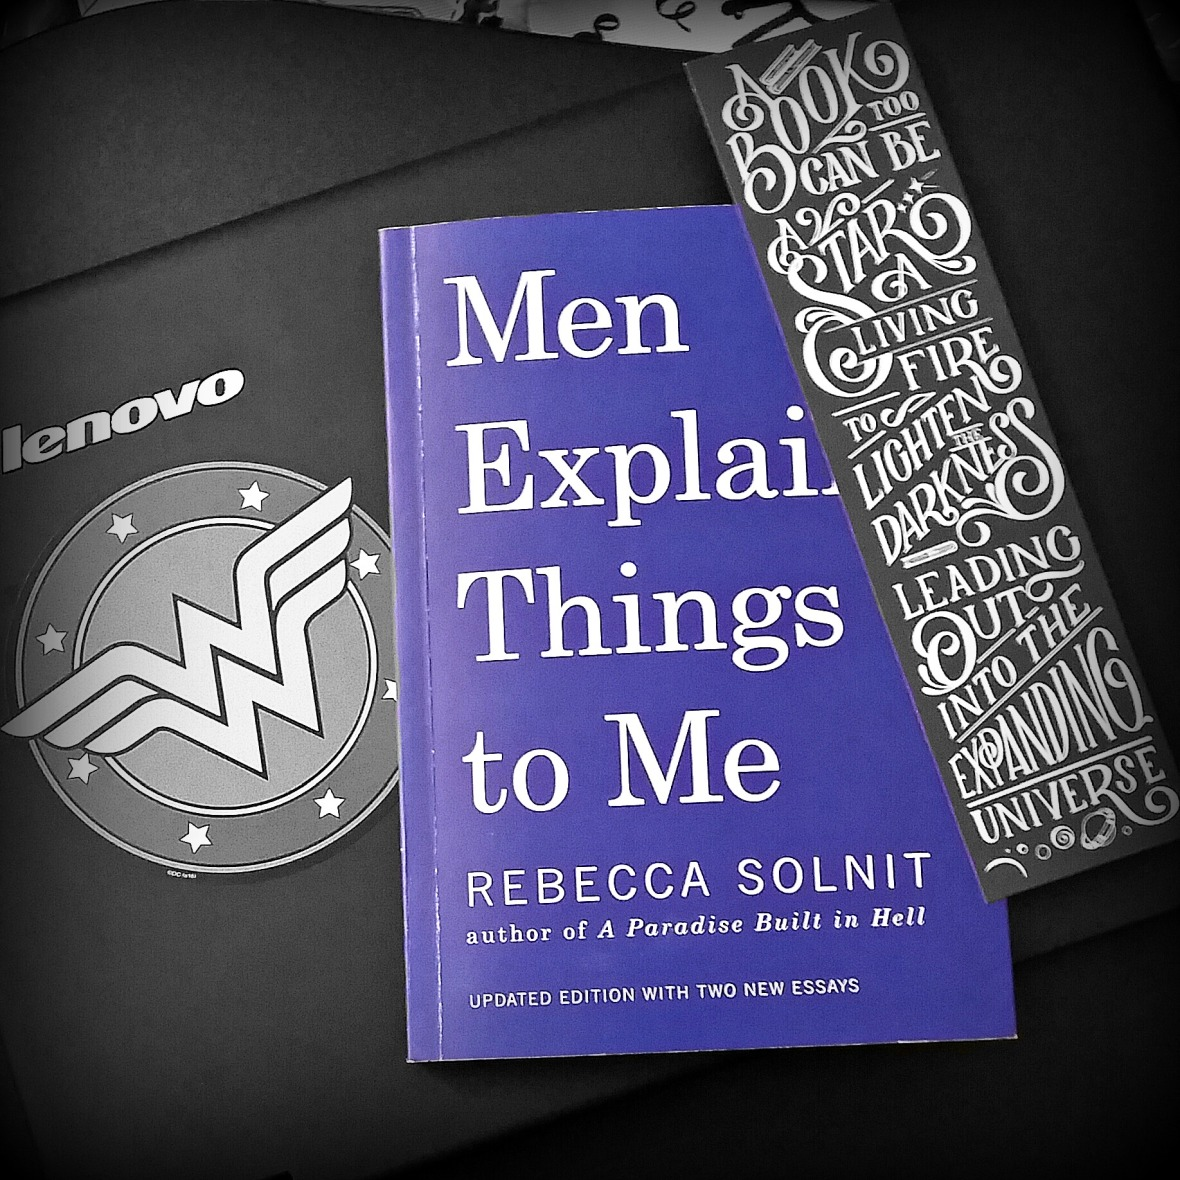 119-Men Explain Things to Me